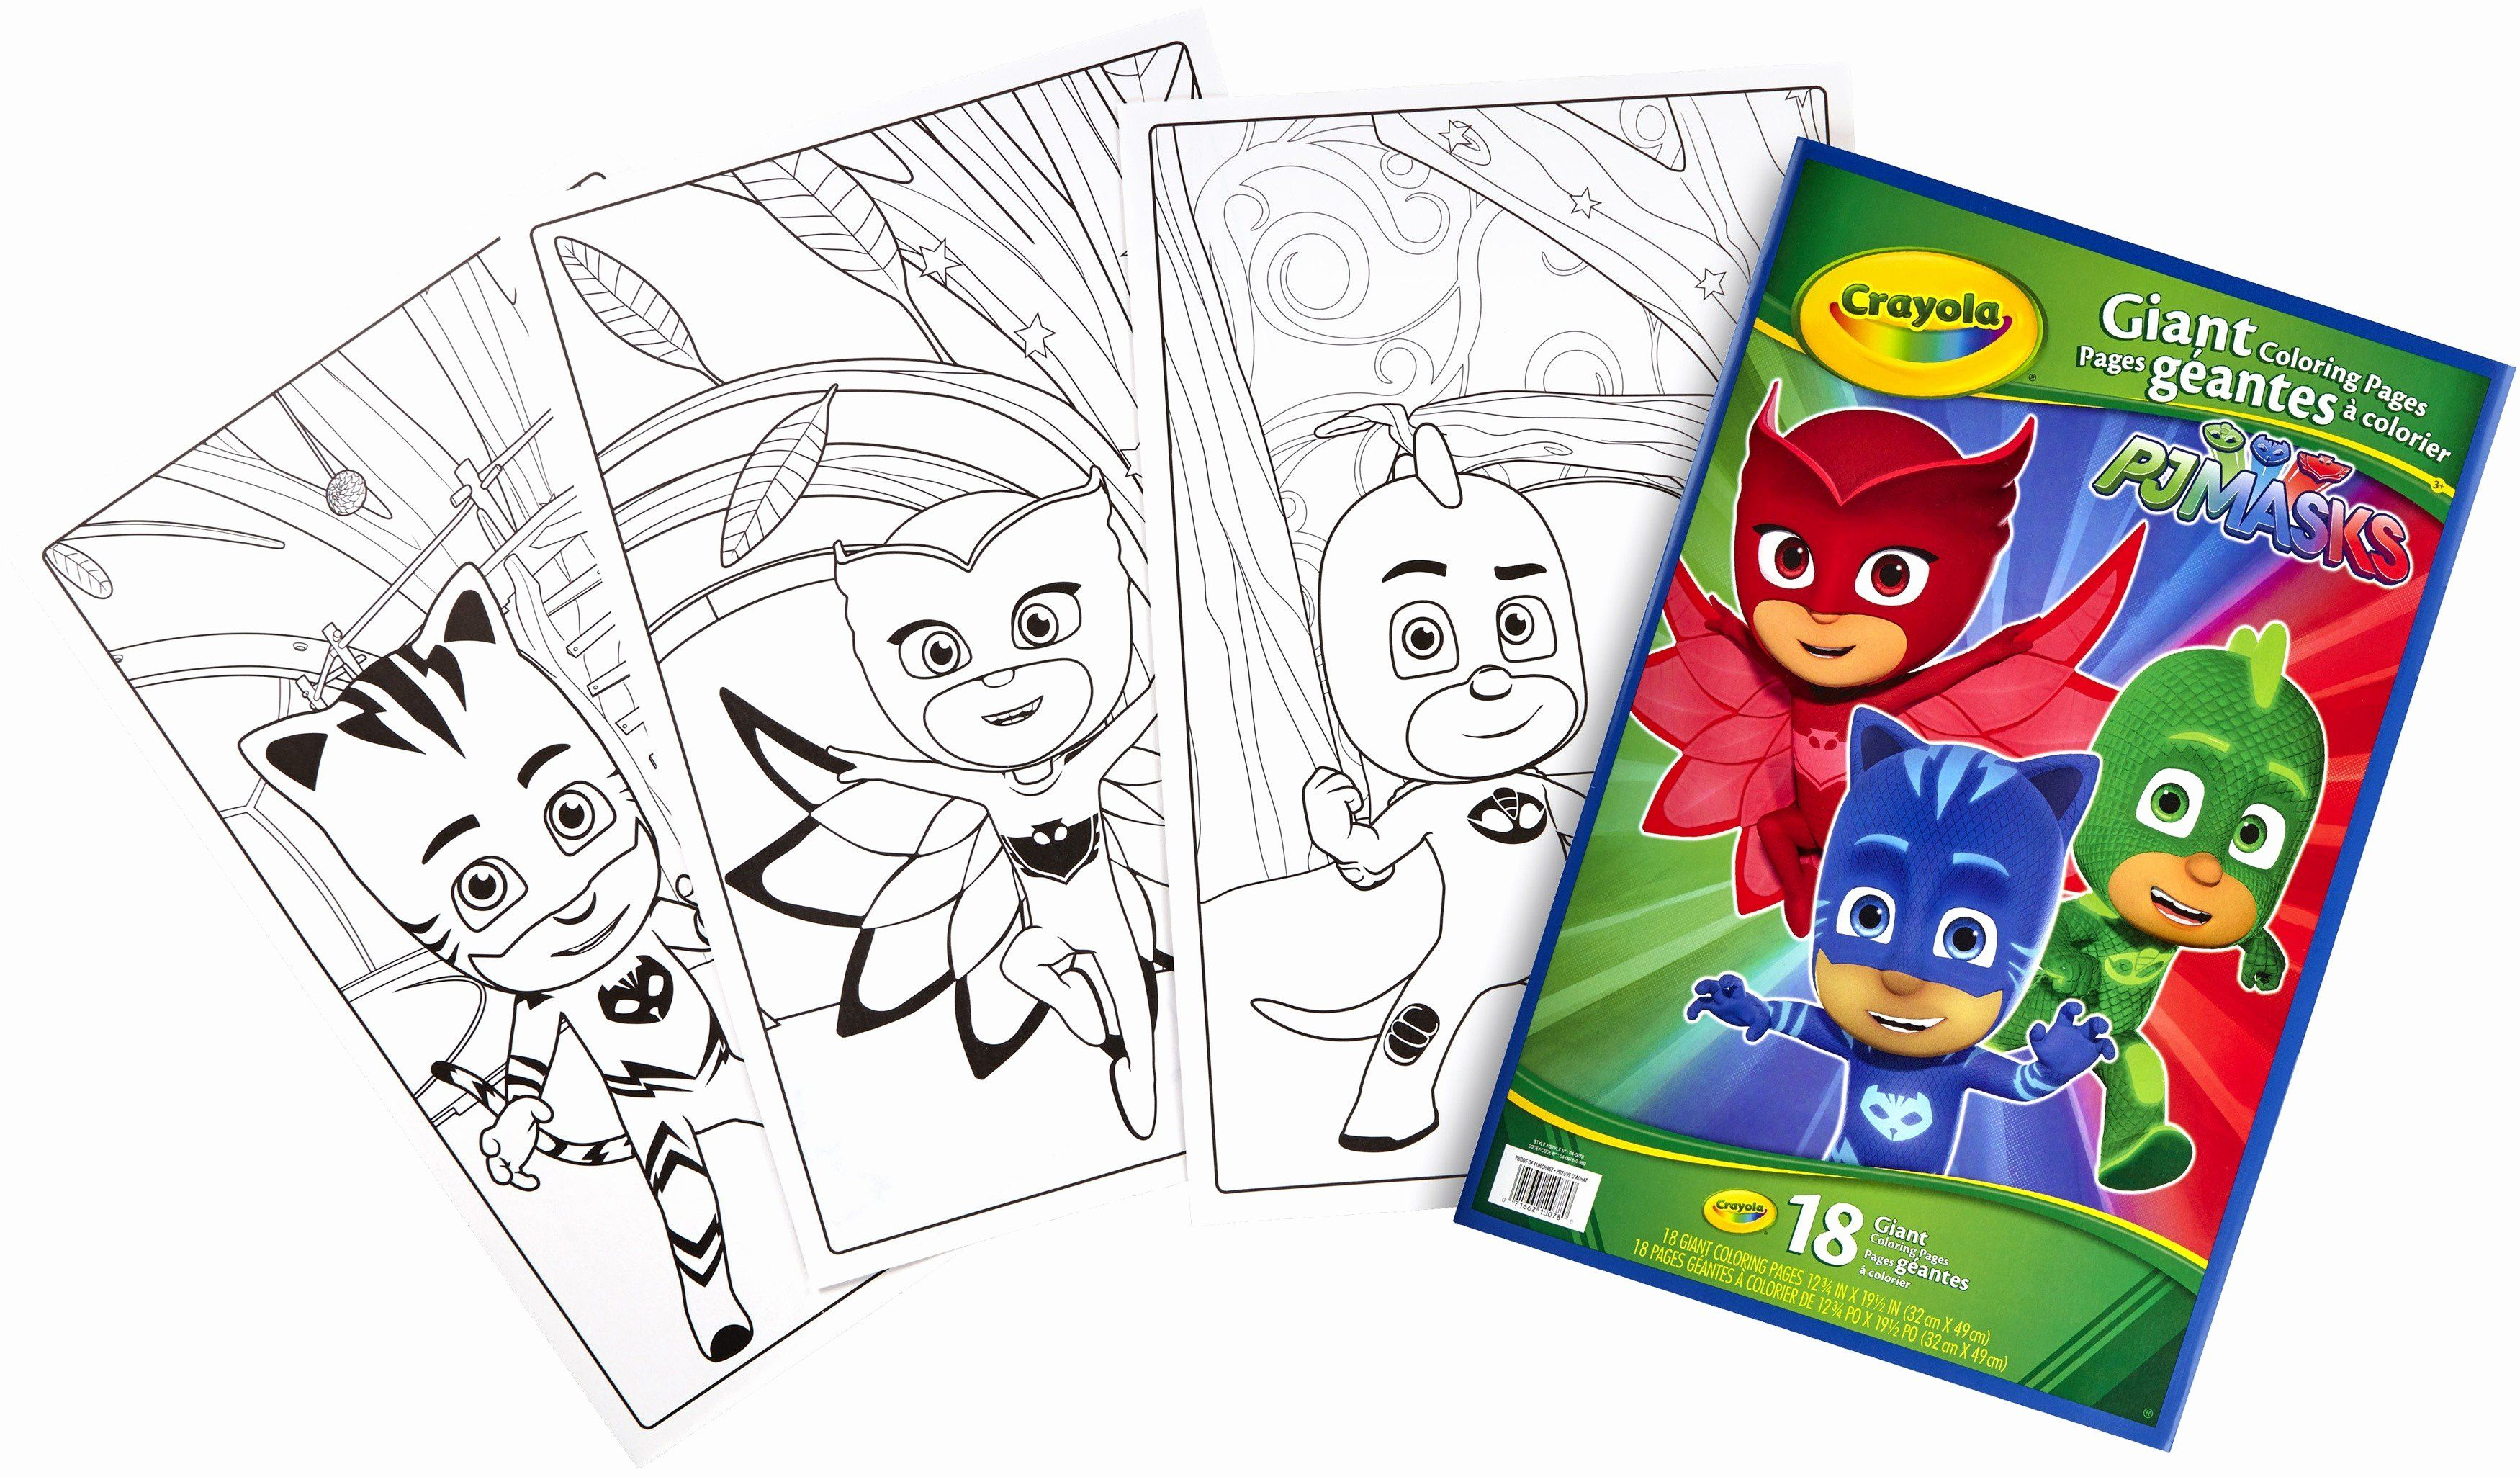 Anna and Elsa from Disney Frozen 2 Hugging Coloring Page   crayola.com   2051x3500